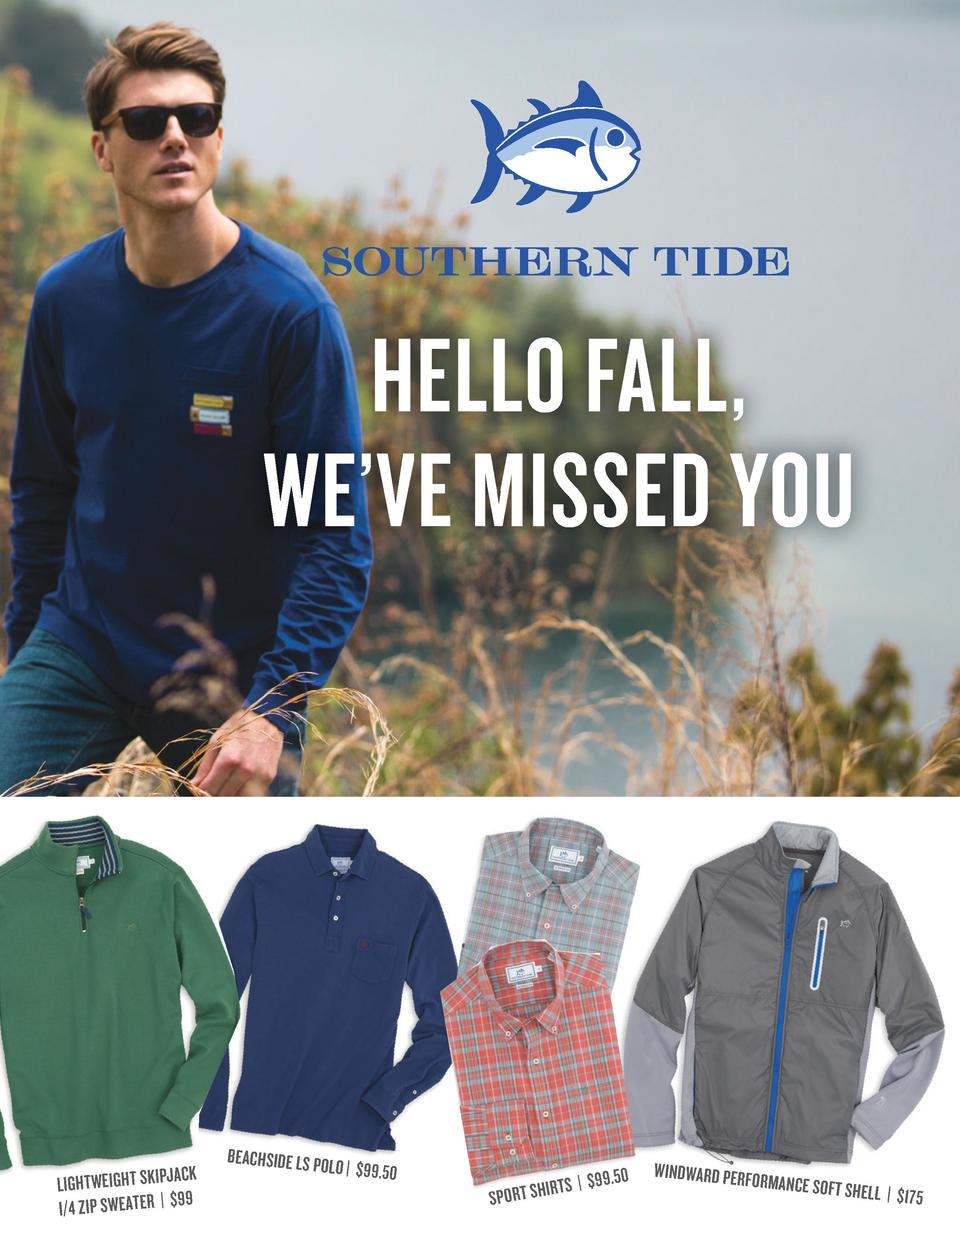 HELLO FALL, WE   VE MISSED YOU  CK LIGHTWEIGHT SKIPJA 9 I 4 ZIP SWEATER    9  BEACHSIDE LS PO  LO    99.50  0 TS    99.5 I...